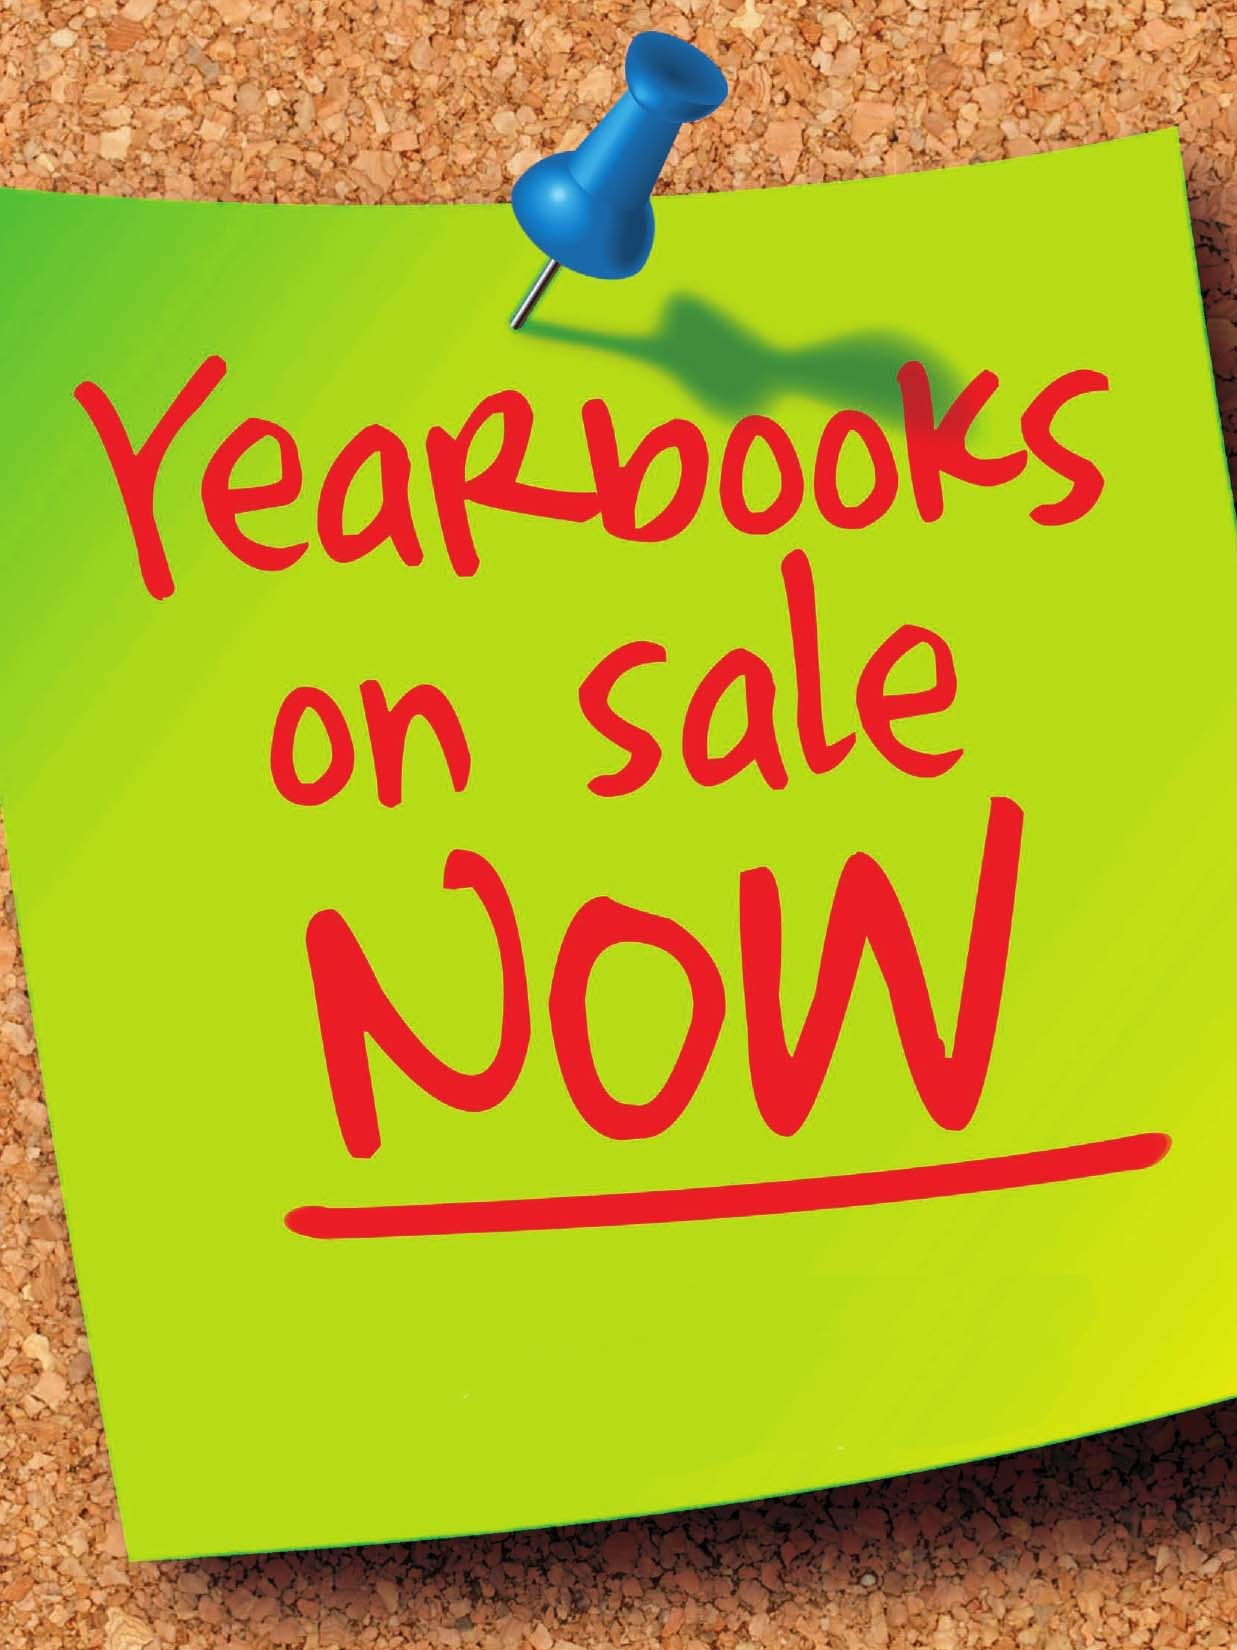 Yearbook_sale